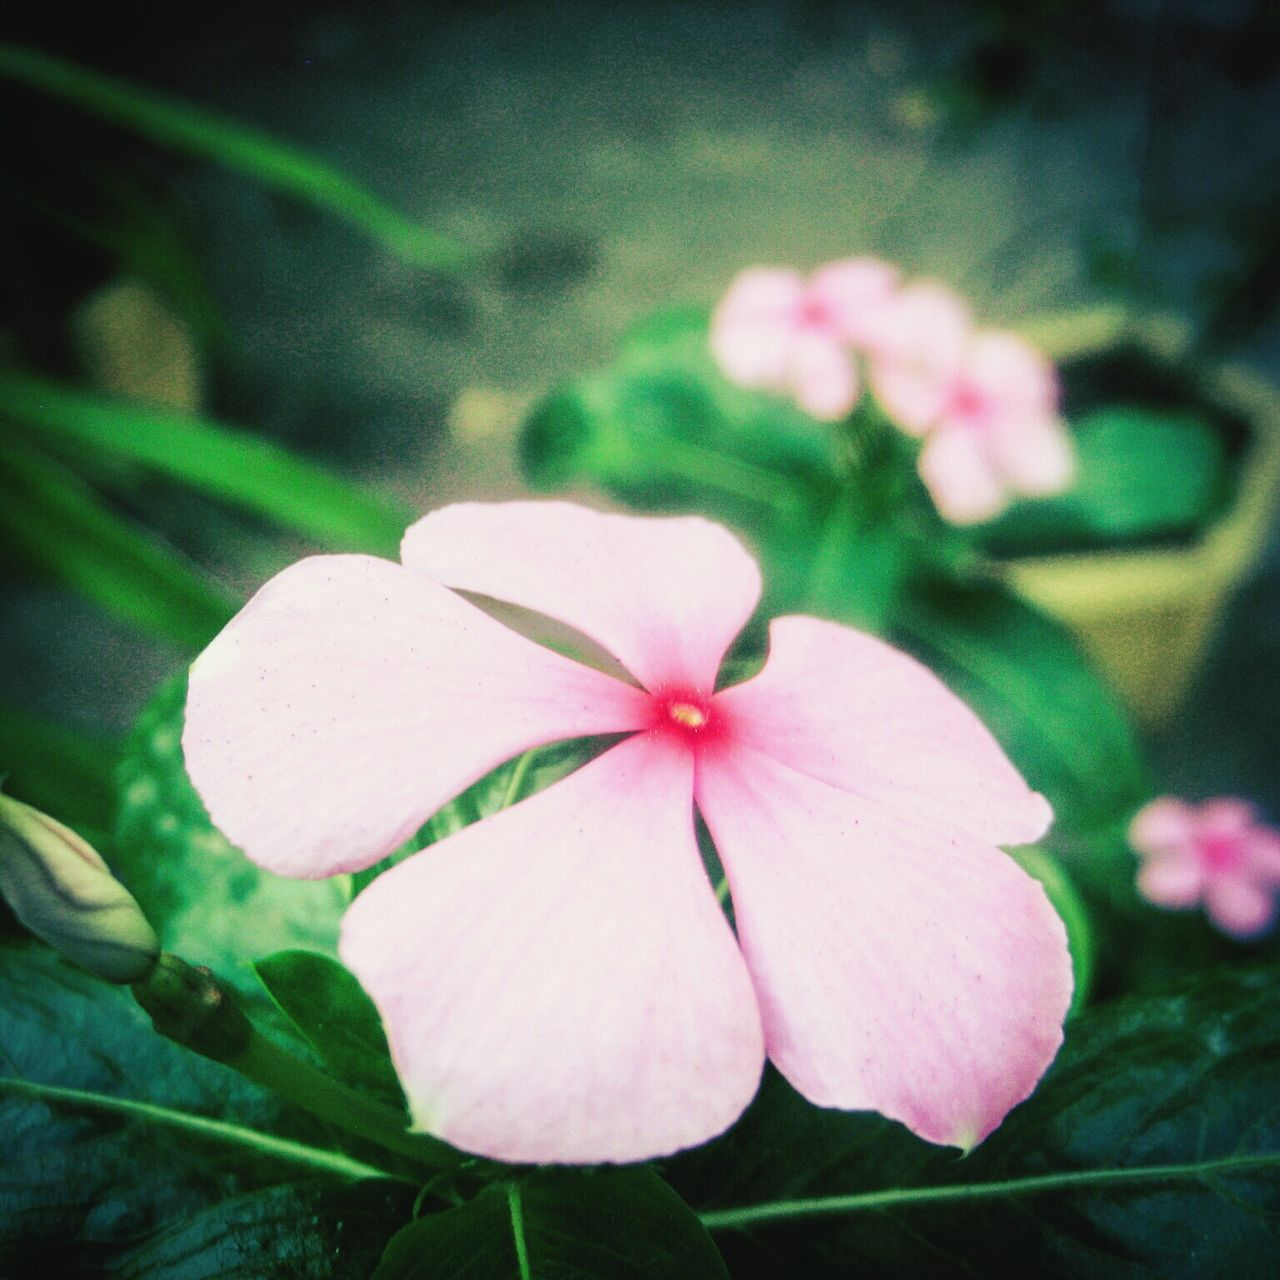 flower, petal, growth, flower head, pink color, beauty in nature, fragility, periwinkle, freshness, blooming, nature, close-up, plant, day, focus on foreground, no people, outdoors